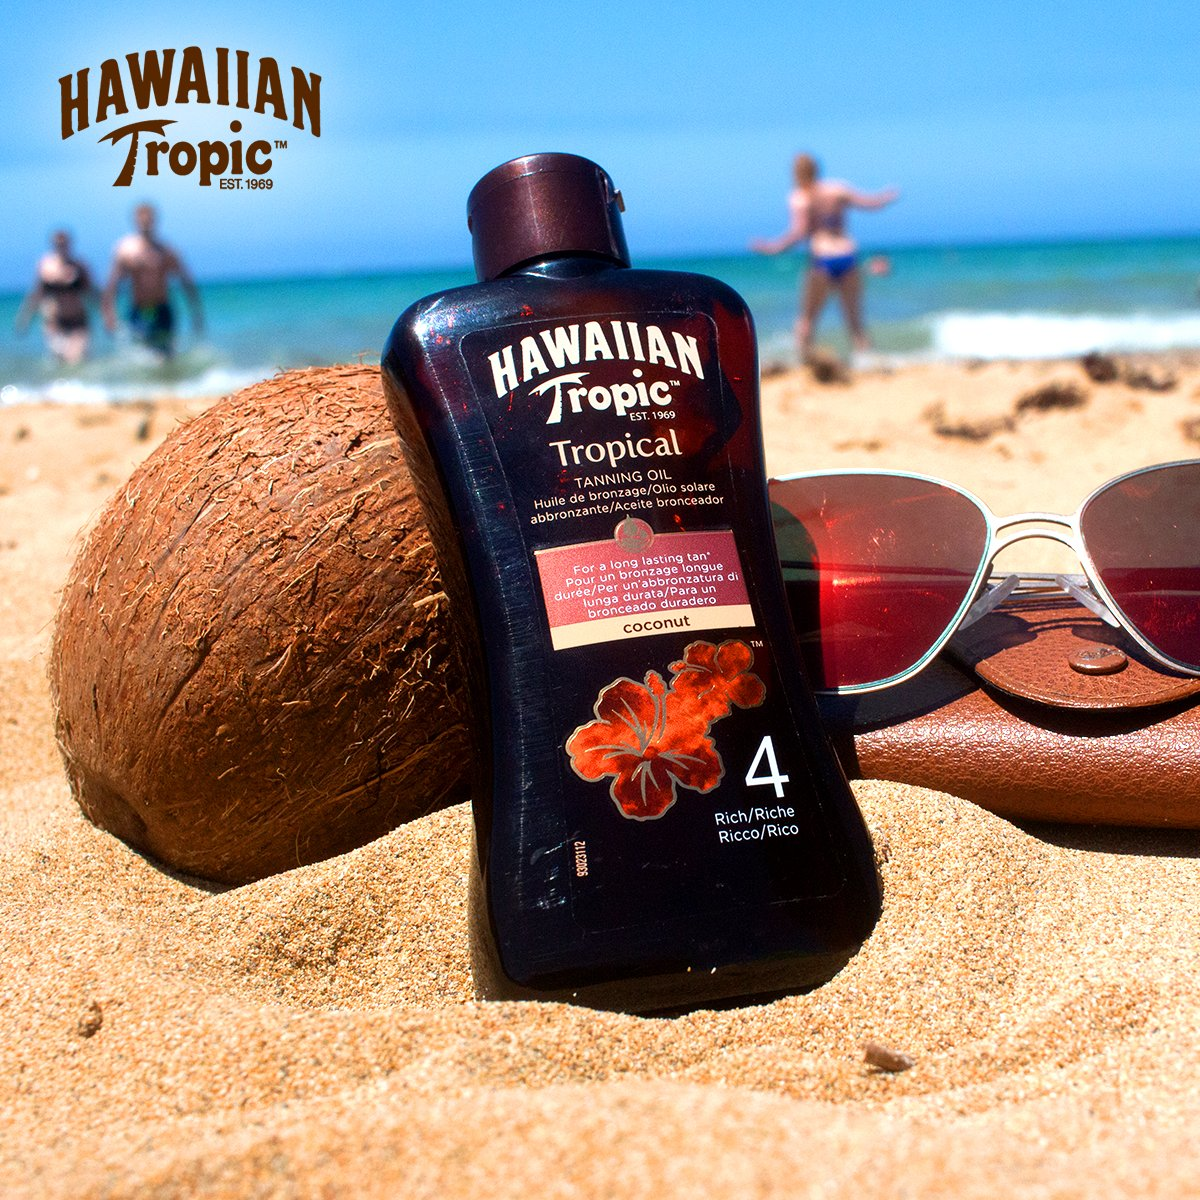 Hawaiian Tropic Malta product 02